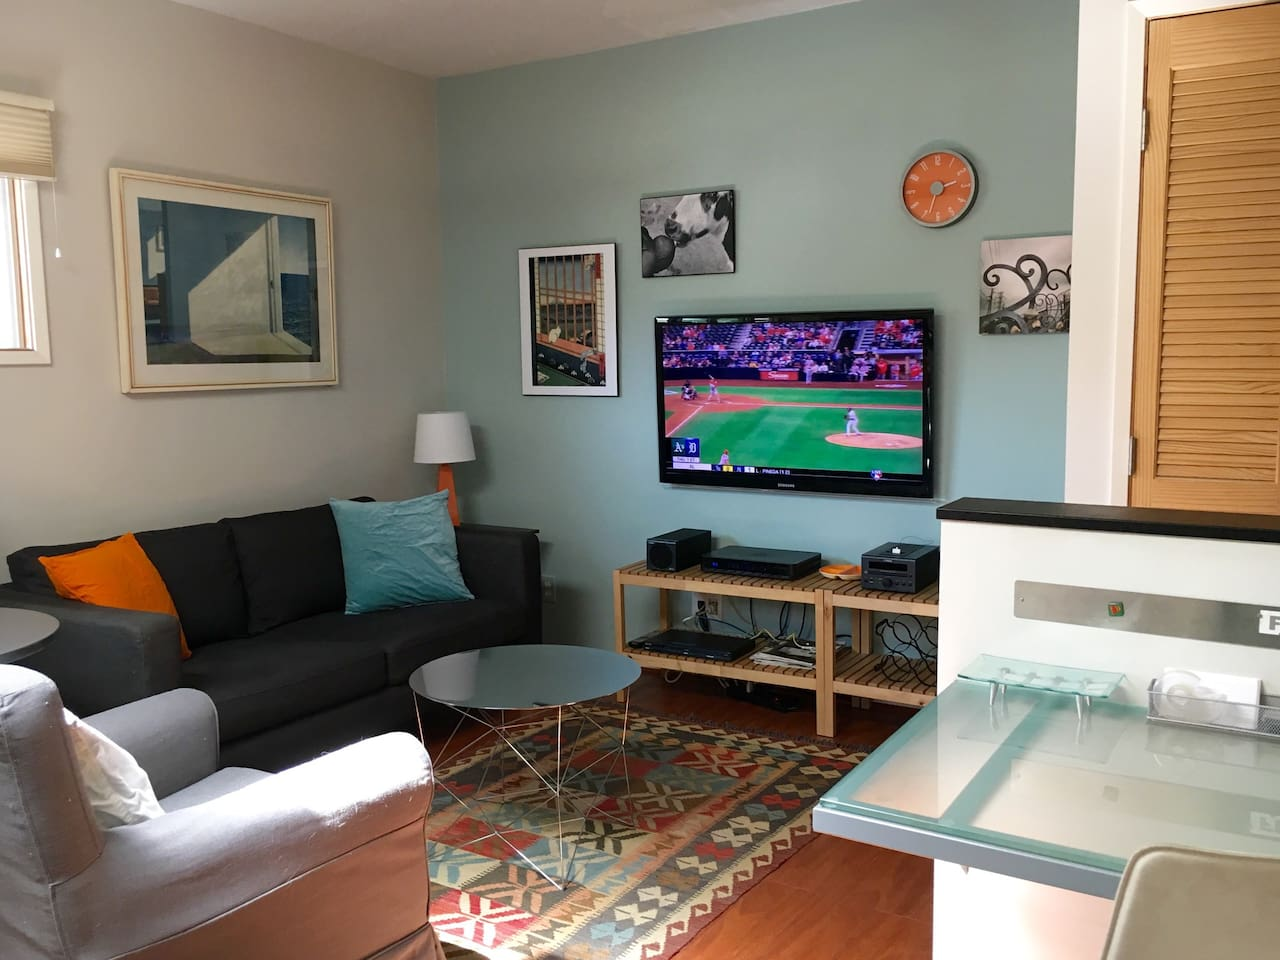 An overview of the Living Room and Desk area. The round dining table is just visible on the left.